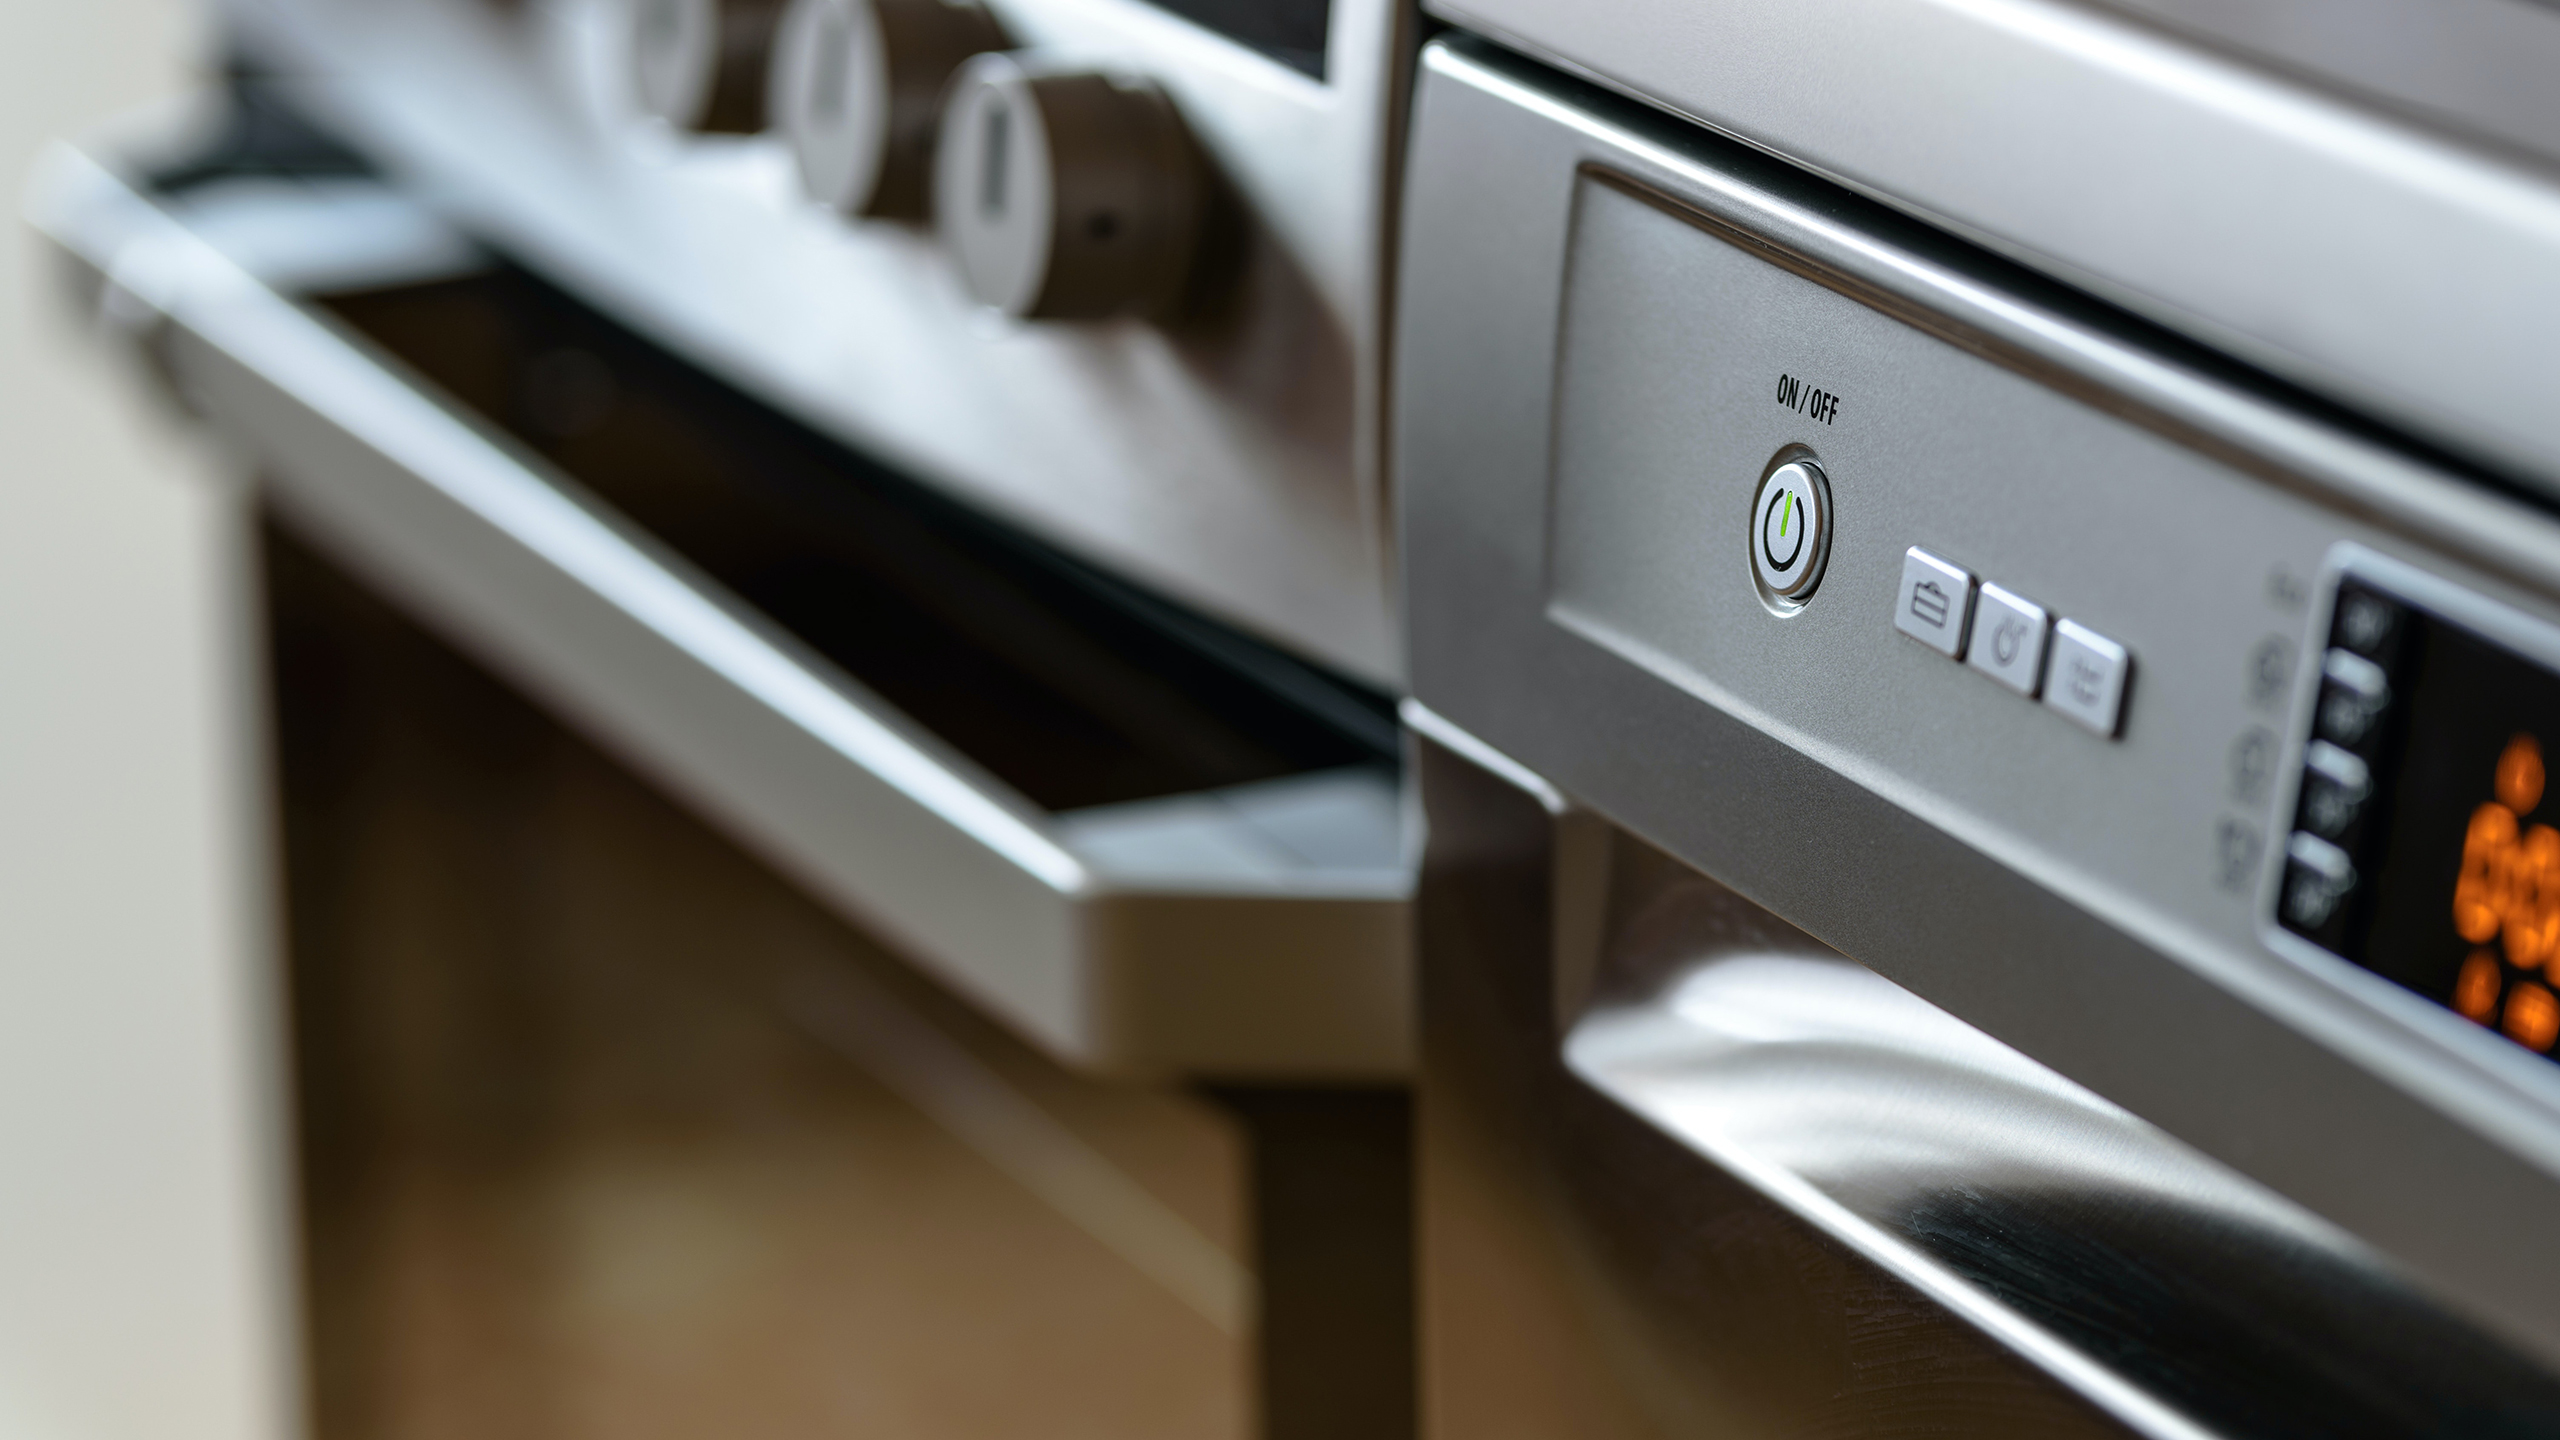 Cleaning Services | Oven Cleaning